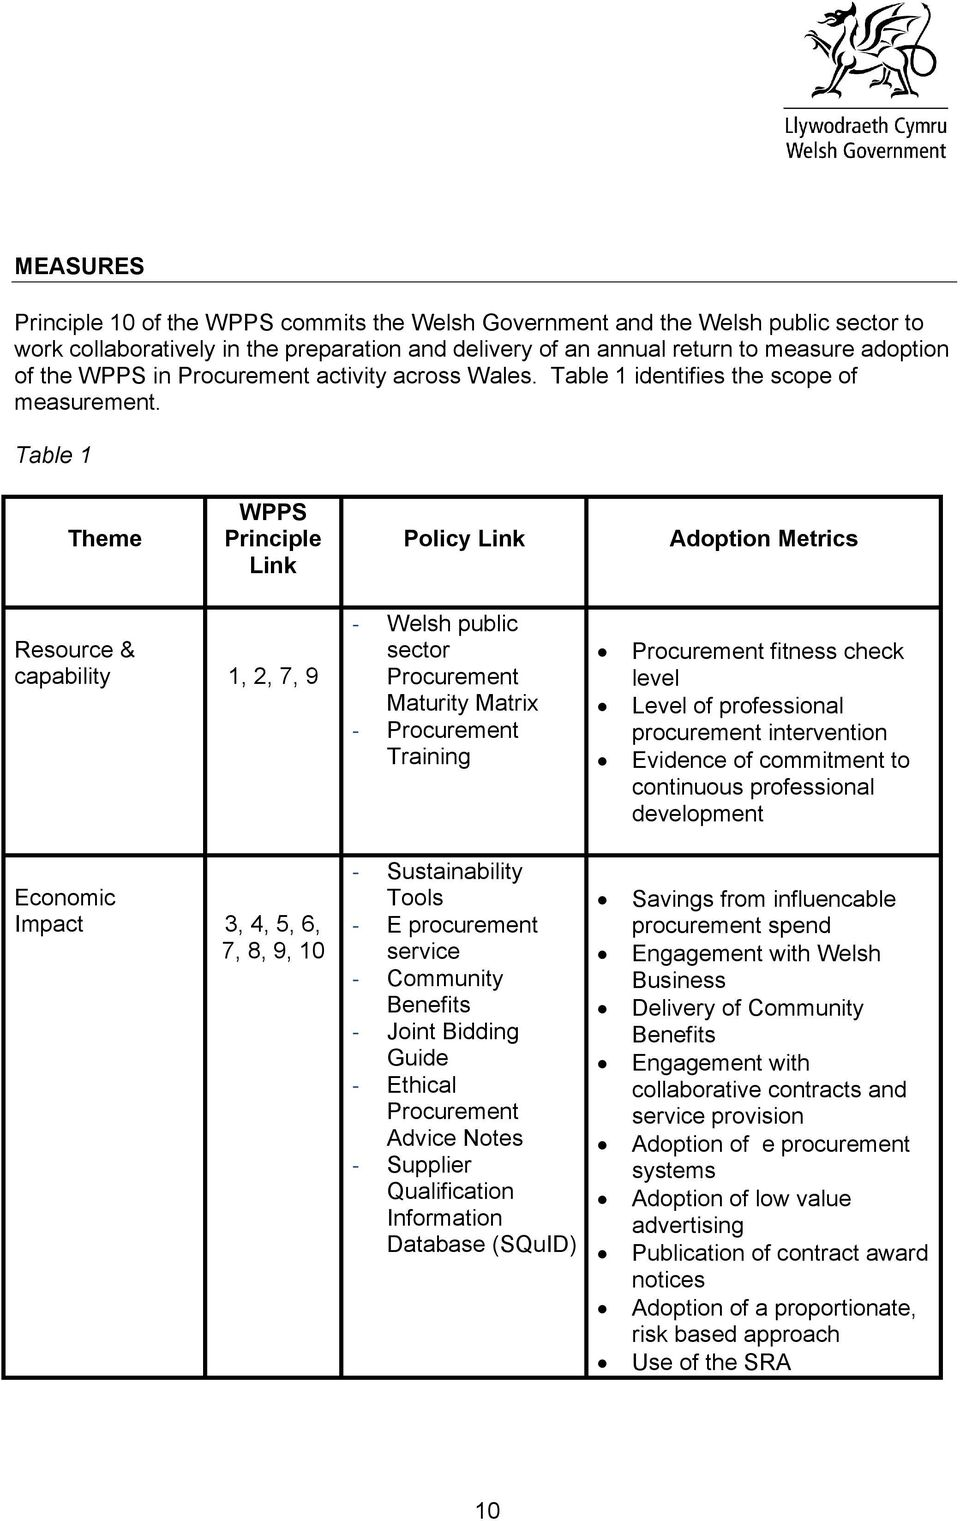 Table 1 Theme WPPS Principle Link Policy Link Adoption Metrics Resource & capability 1, 2, 7, 9 - Welsh public sector Procurement Maturity Matrix - Procurement Training Procurement fitness check